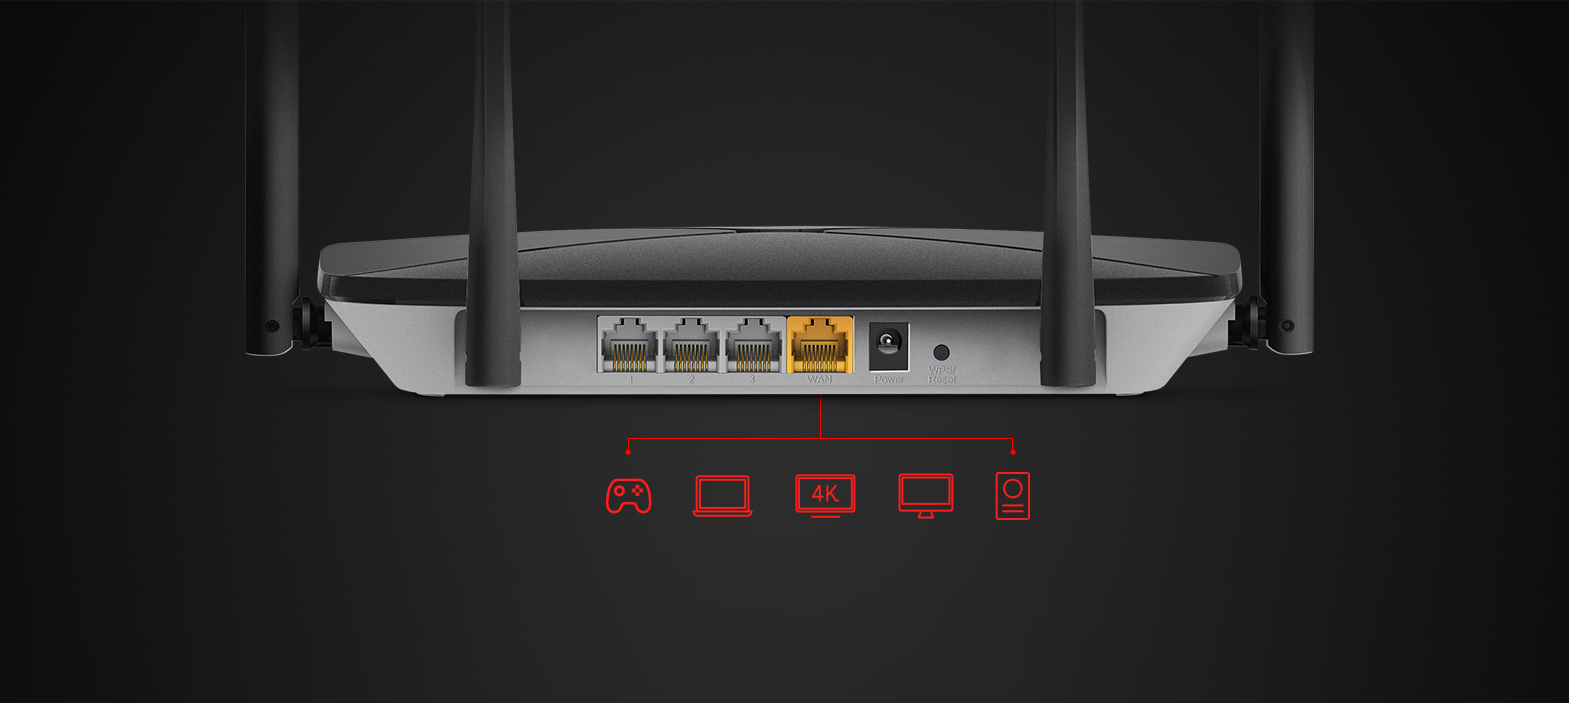 #Router Mercusys AC12G